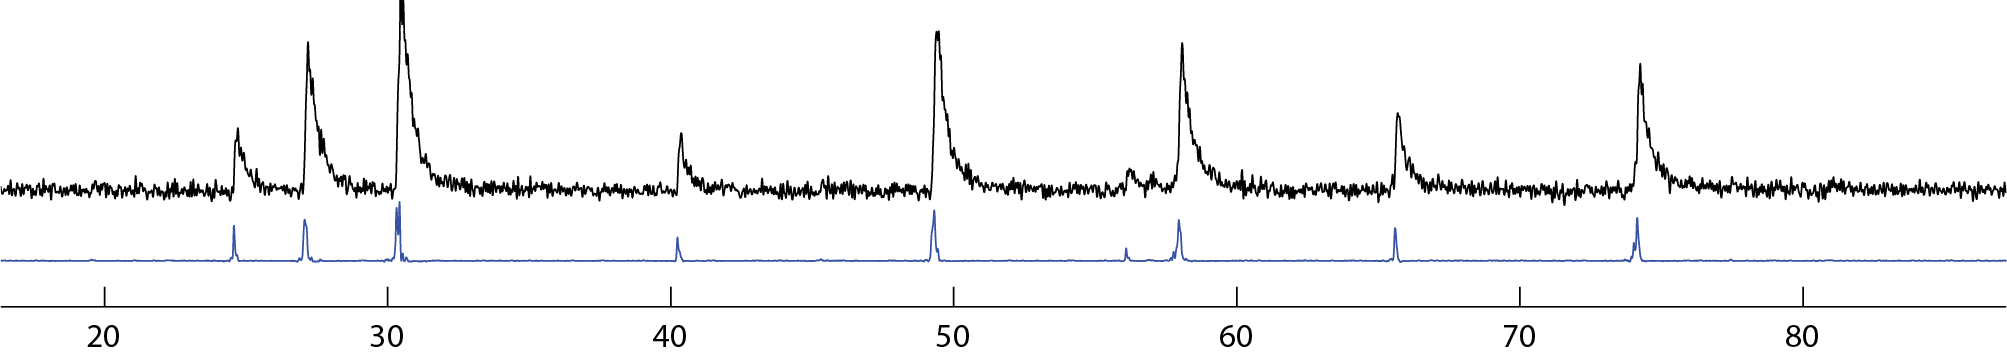 Example of deconvolved trace of a dataset without ground truth